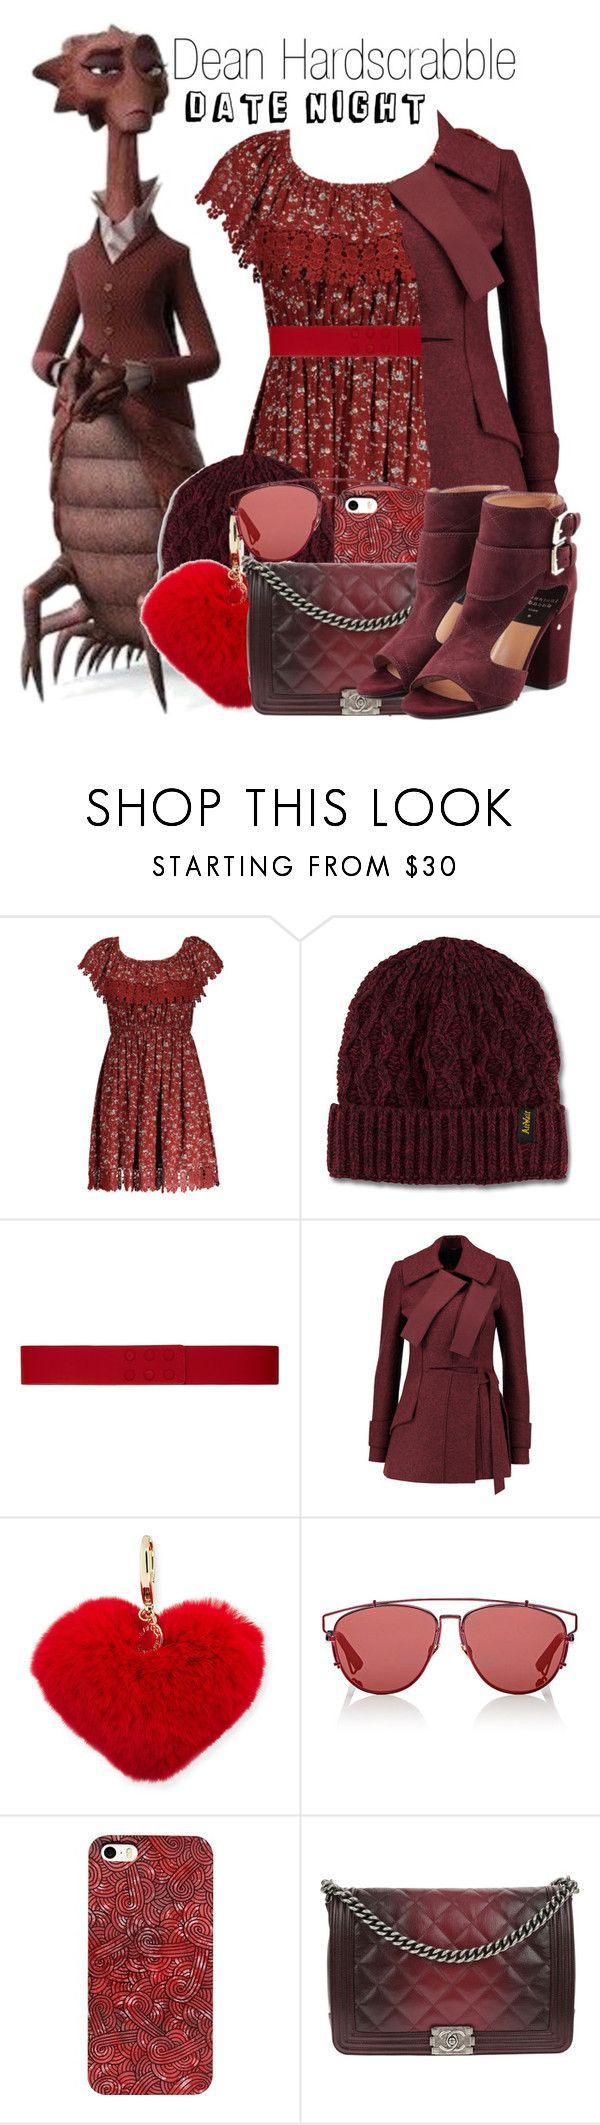 """Dean Hardscrabble~ DisneyBound"" by basic-disney ❤ liked on Polyvore featuring INC International Concepts, Dr. Martens, Paule Ka, Proenza Schouler, Rebecca Minkoff, Christian Dior, Chanel and Laurence Dacade"